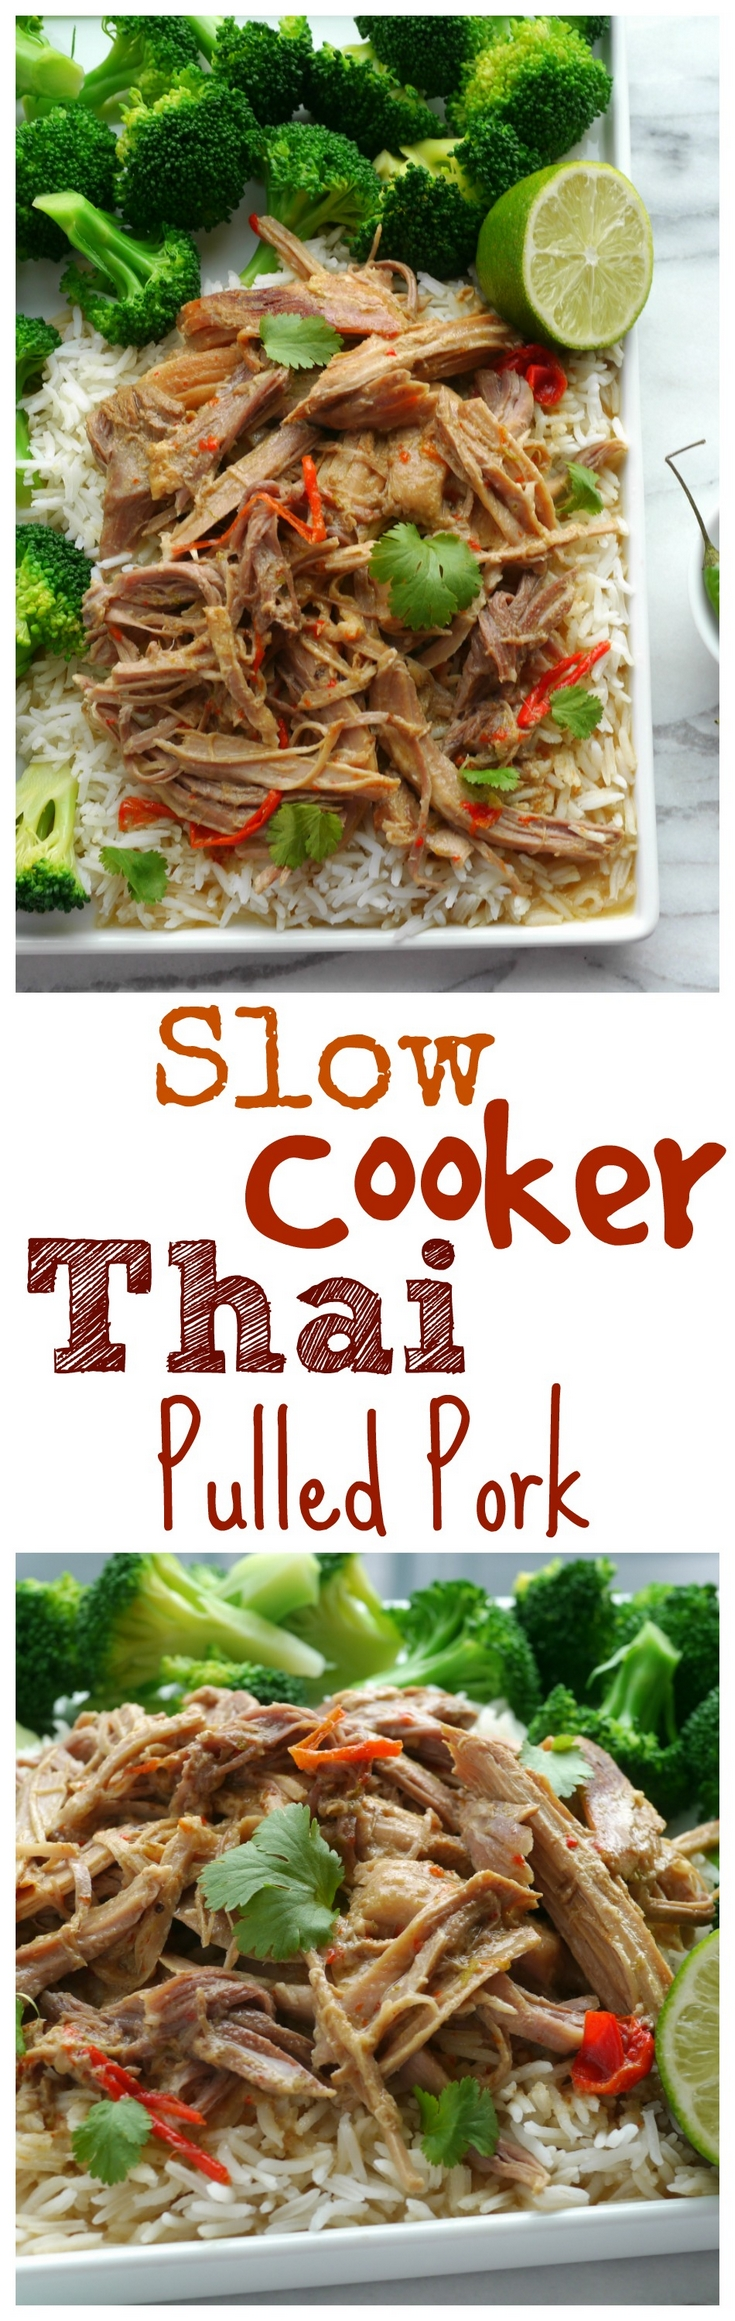 VIDEO + RECIPE: Delicious shredded pork with a Thai flavor you will not be able to stop eating. This Slow Cooker Thai Pork has layers of flavor and is perfect served over rice, but would also make great pulled pork sandwiches, from NoblePig.com. via @cmpollak1